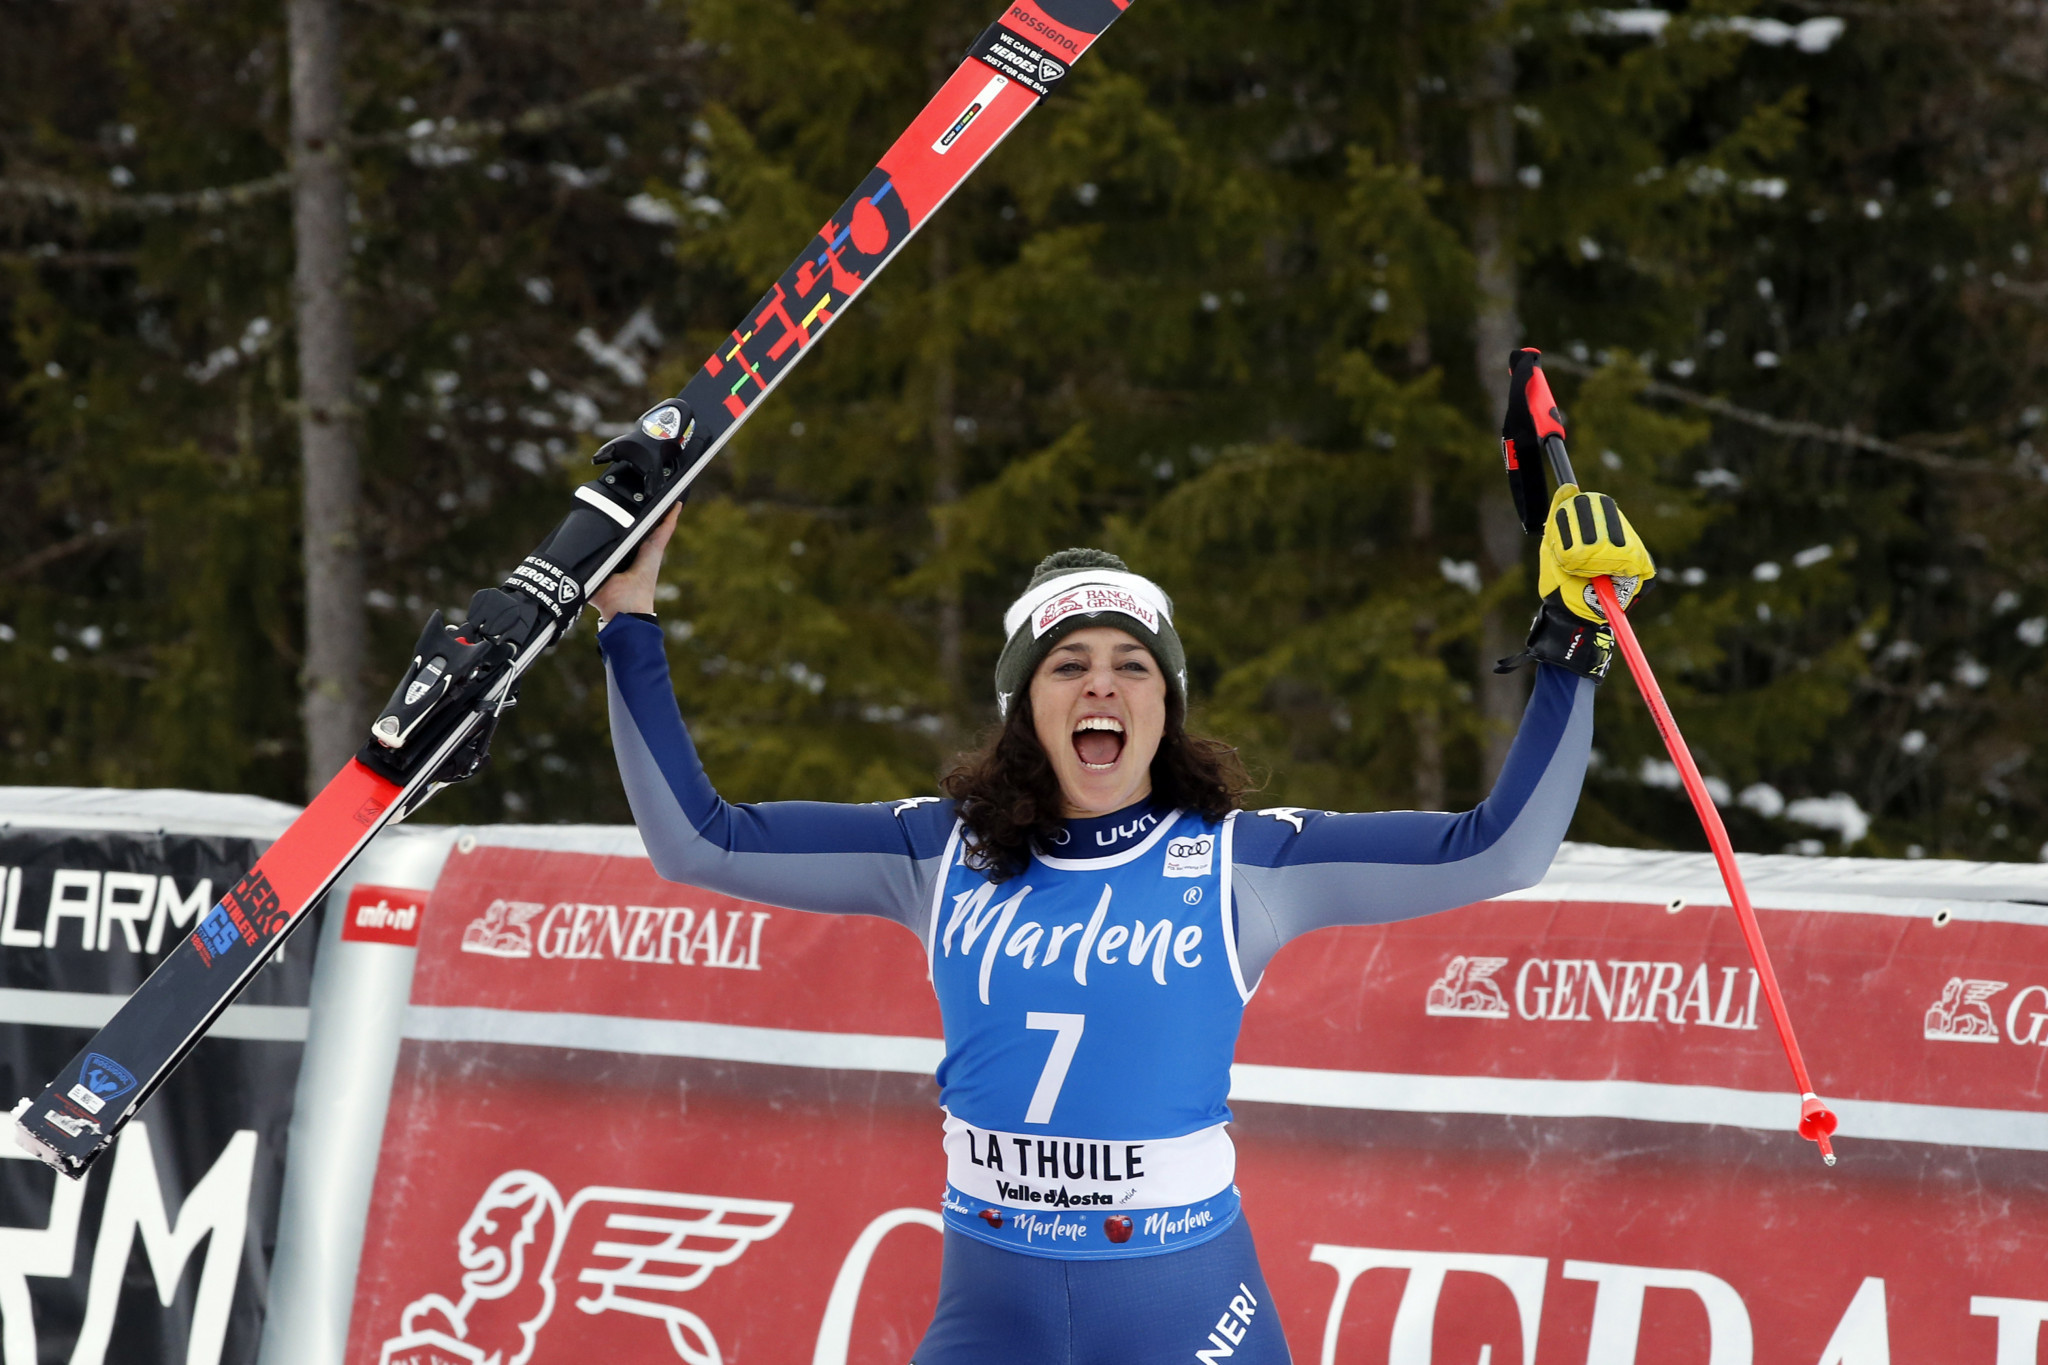 Brignone earns FIS Alpine combined World Cup crystal globe as action in La Thuile cancelled